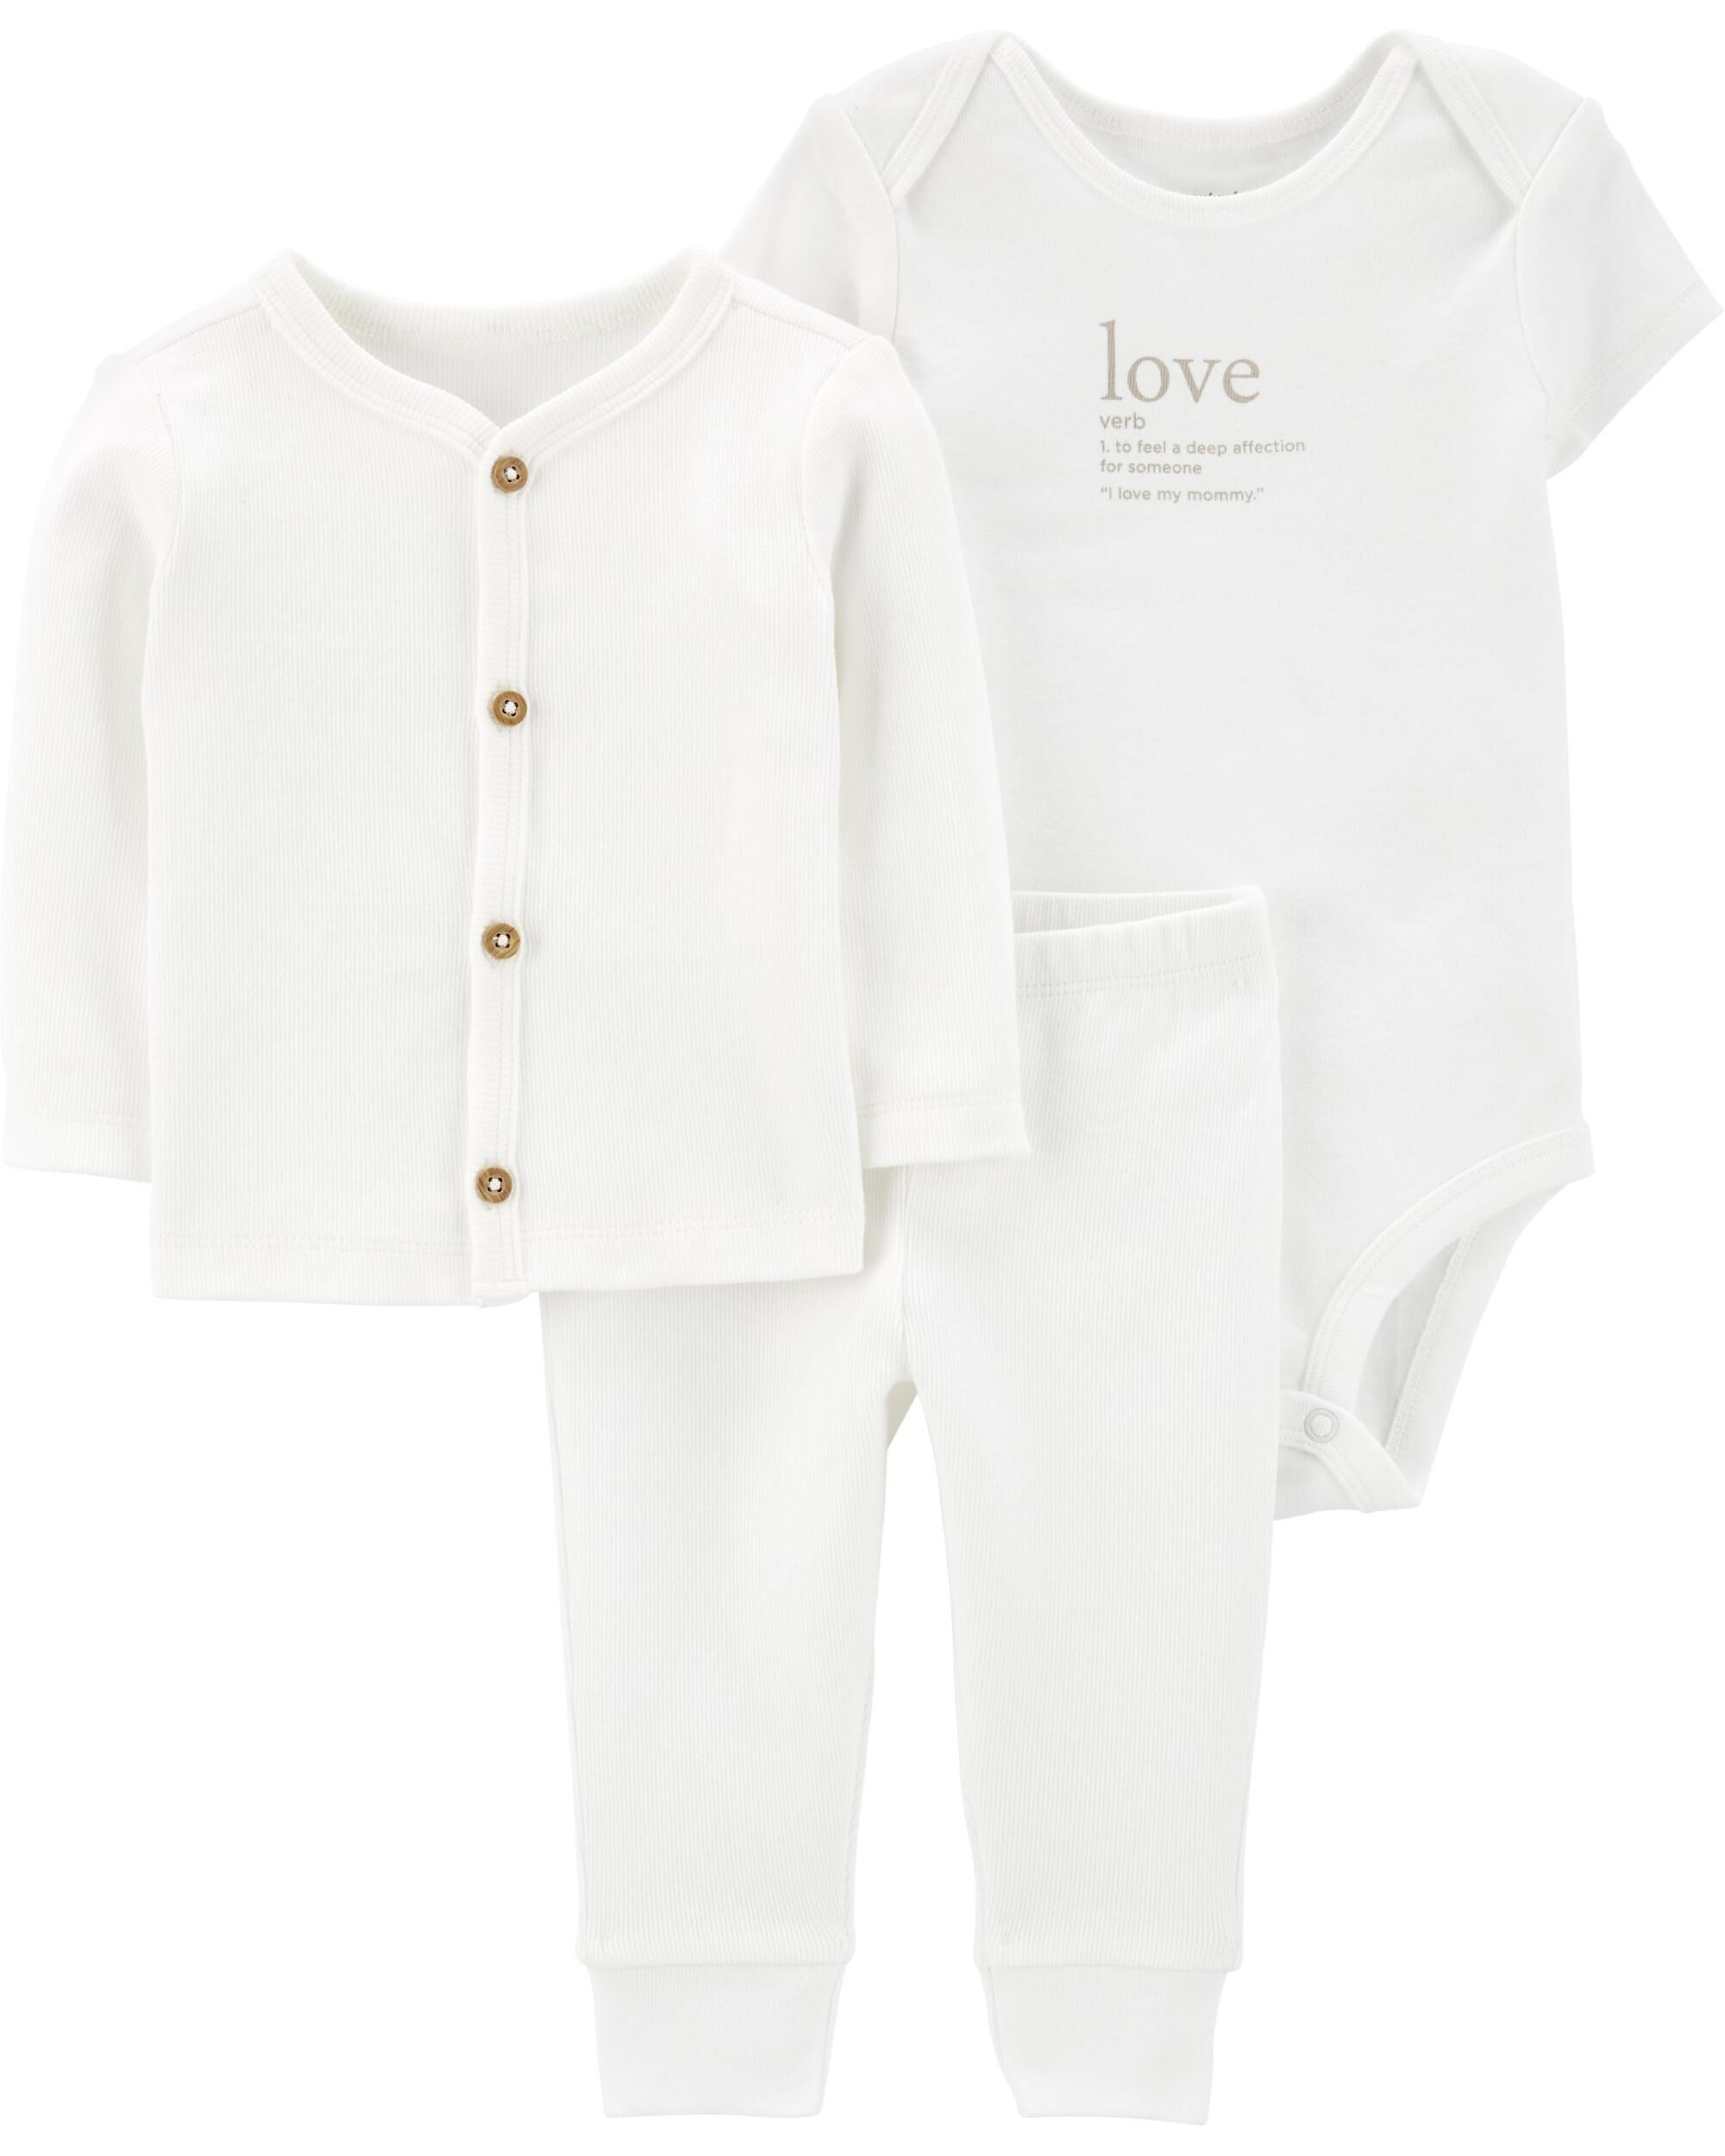 Carters Baby 2 Piece Outfit Set sizes Newborn 6 12 18 months Black White